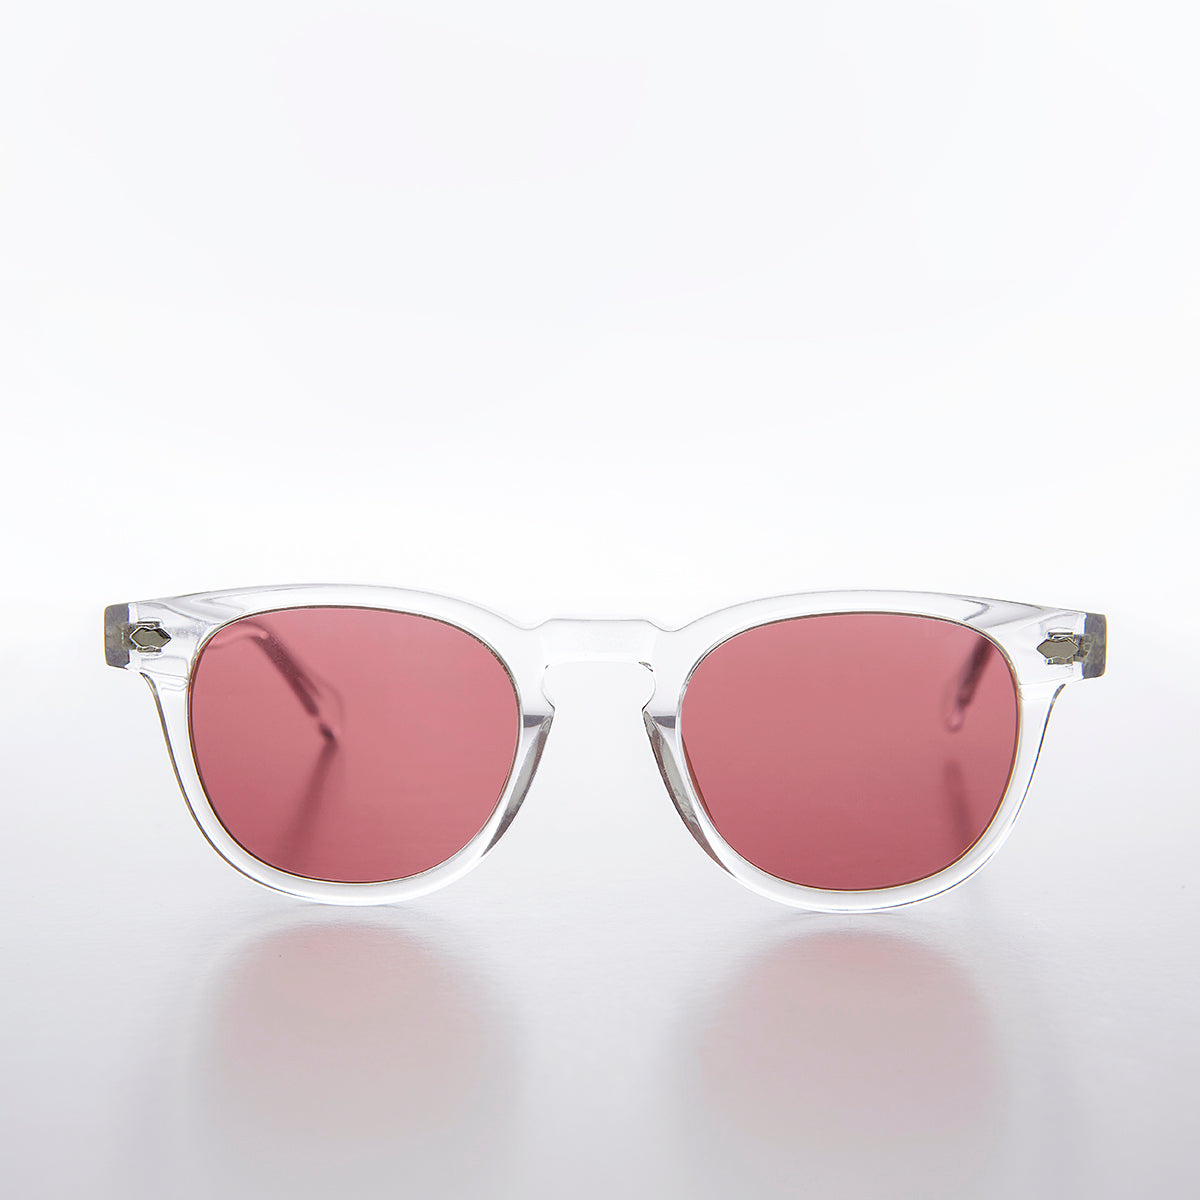 Clear Acetate Square Sunglass with Pink Lens